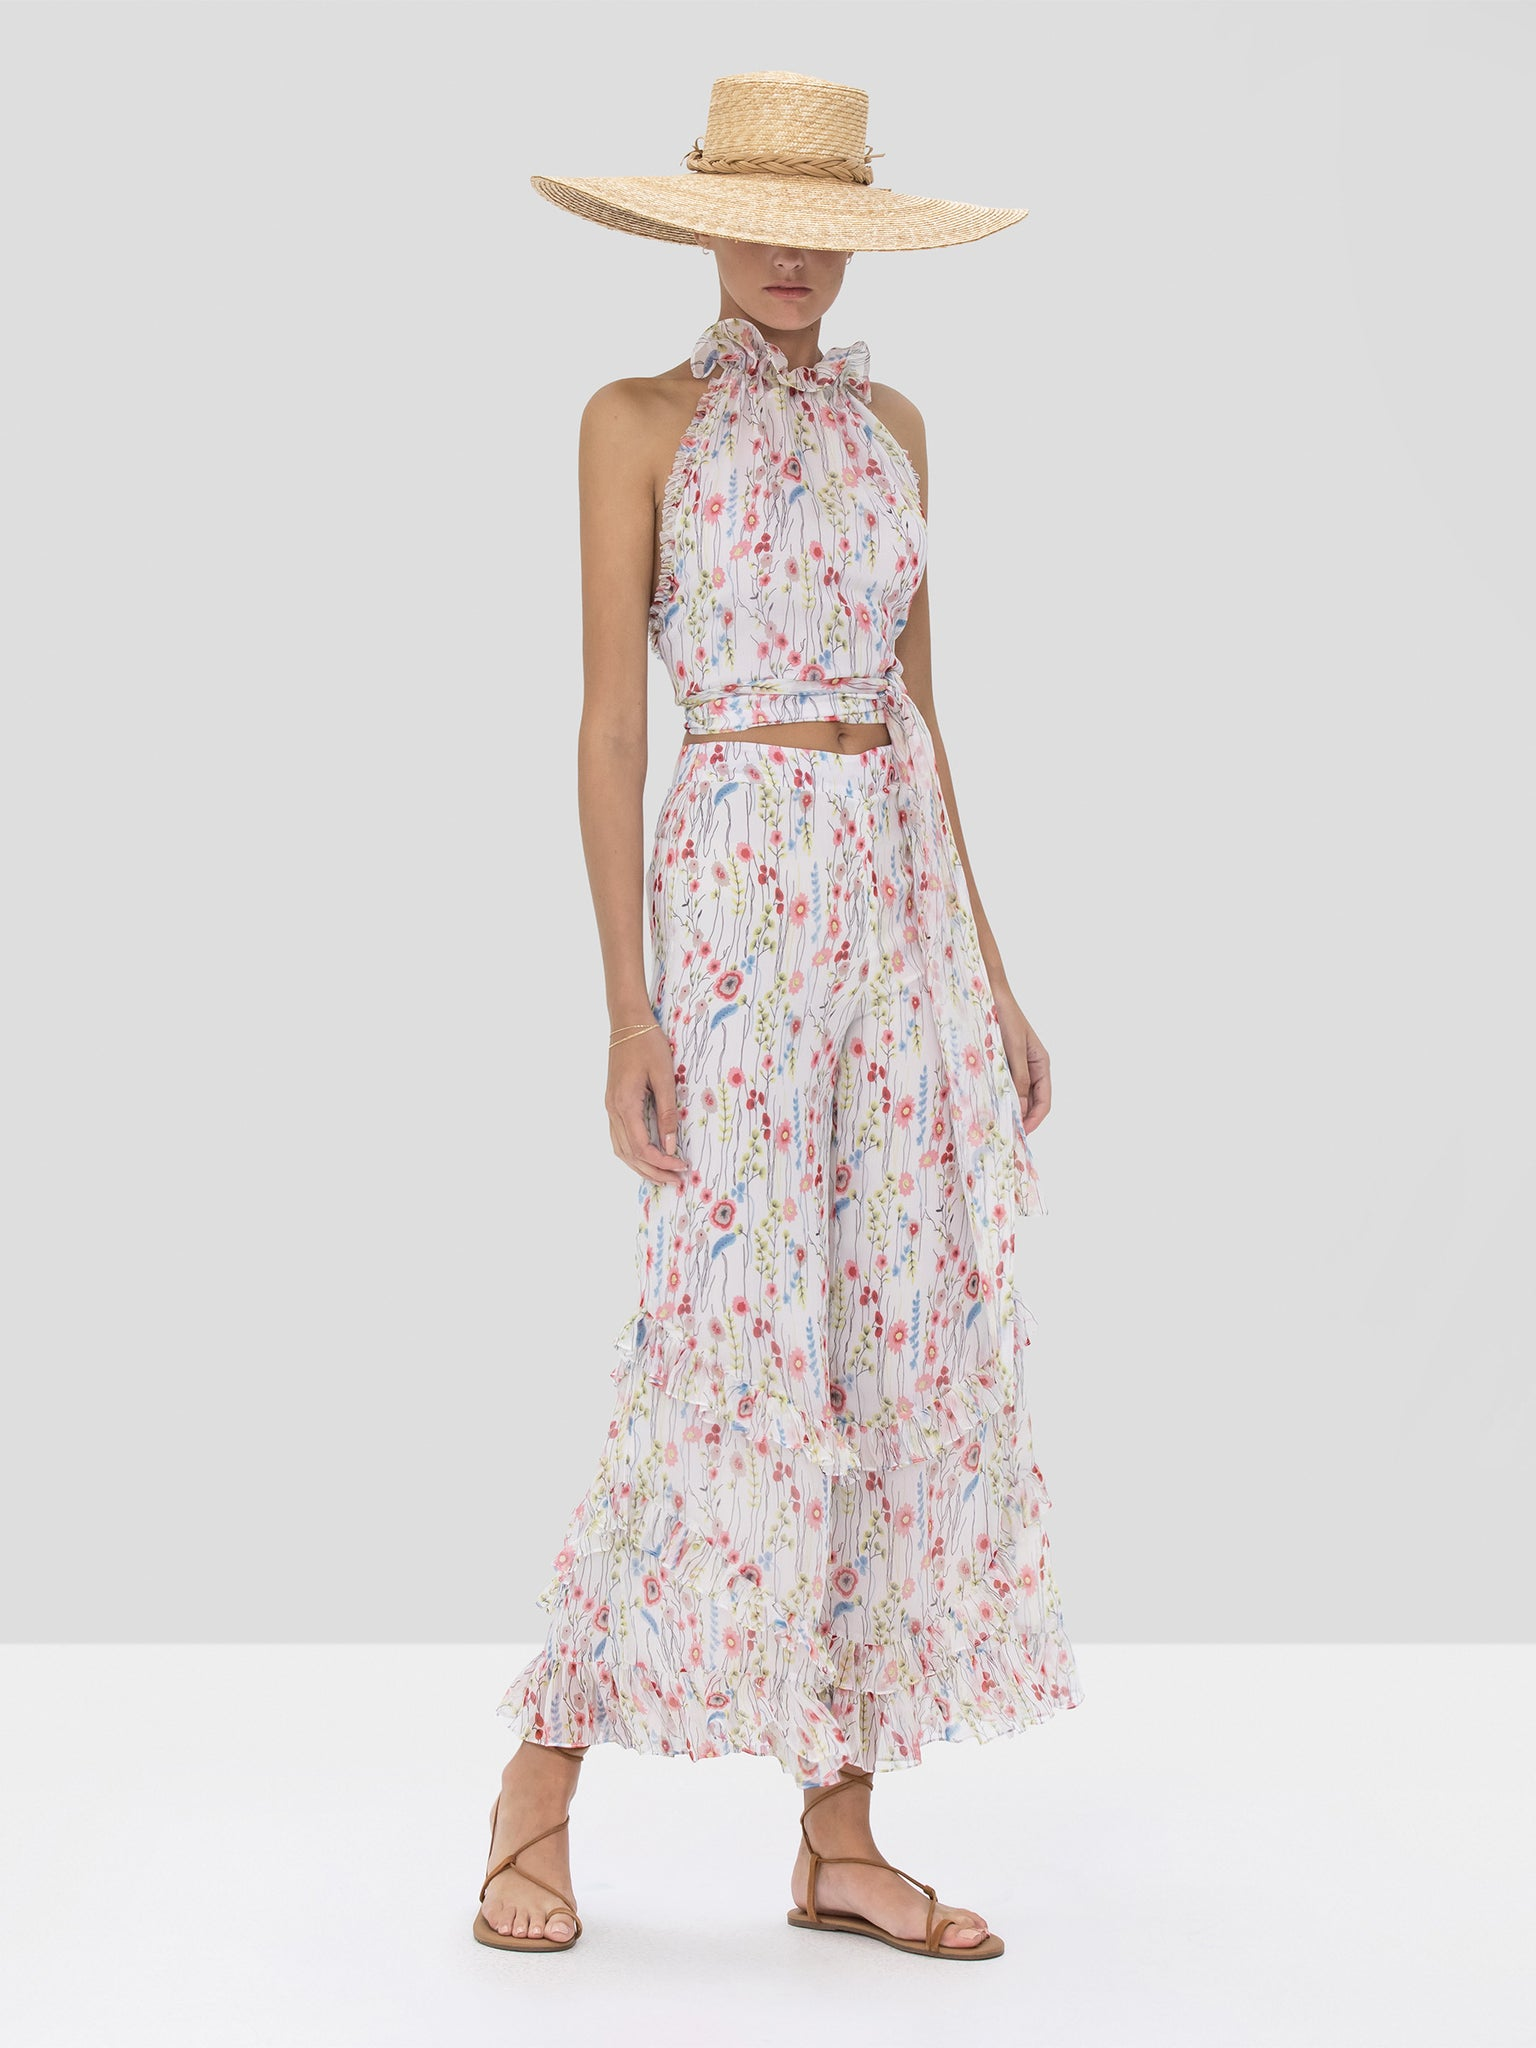 Alexis Balbina Crop Top and Faizel Pant in White Bouquet from Spring Summer 2020 Collection